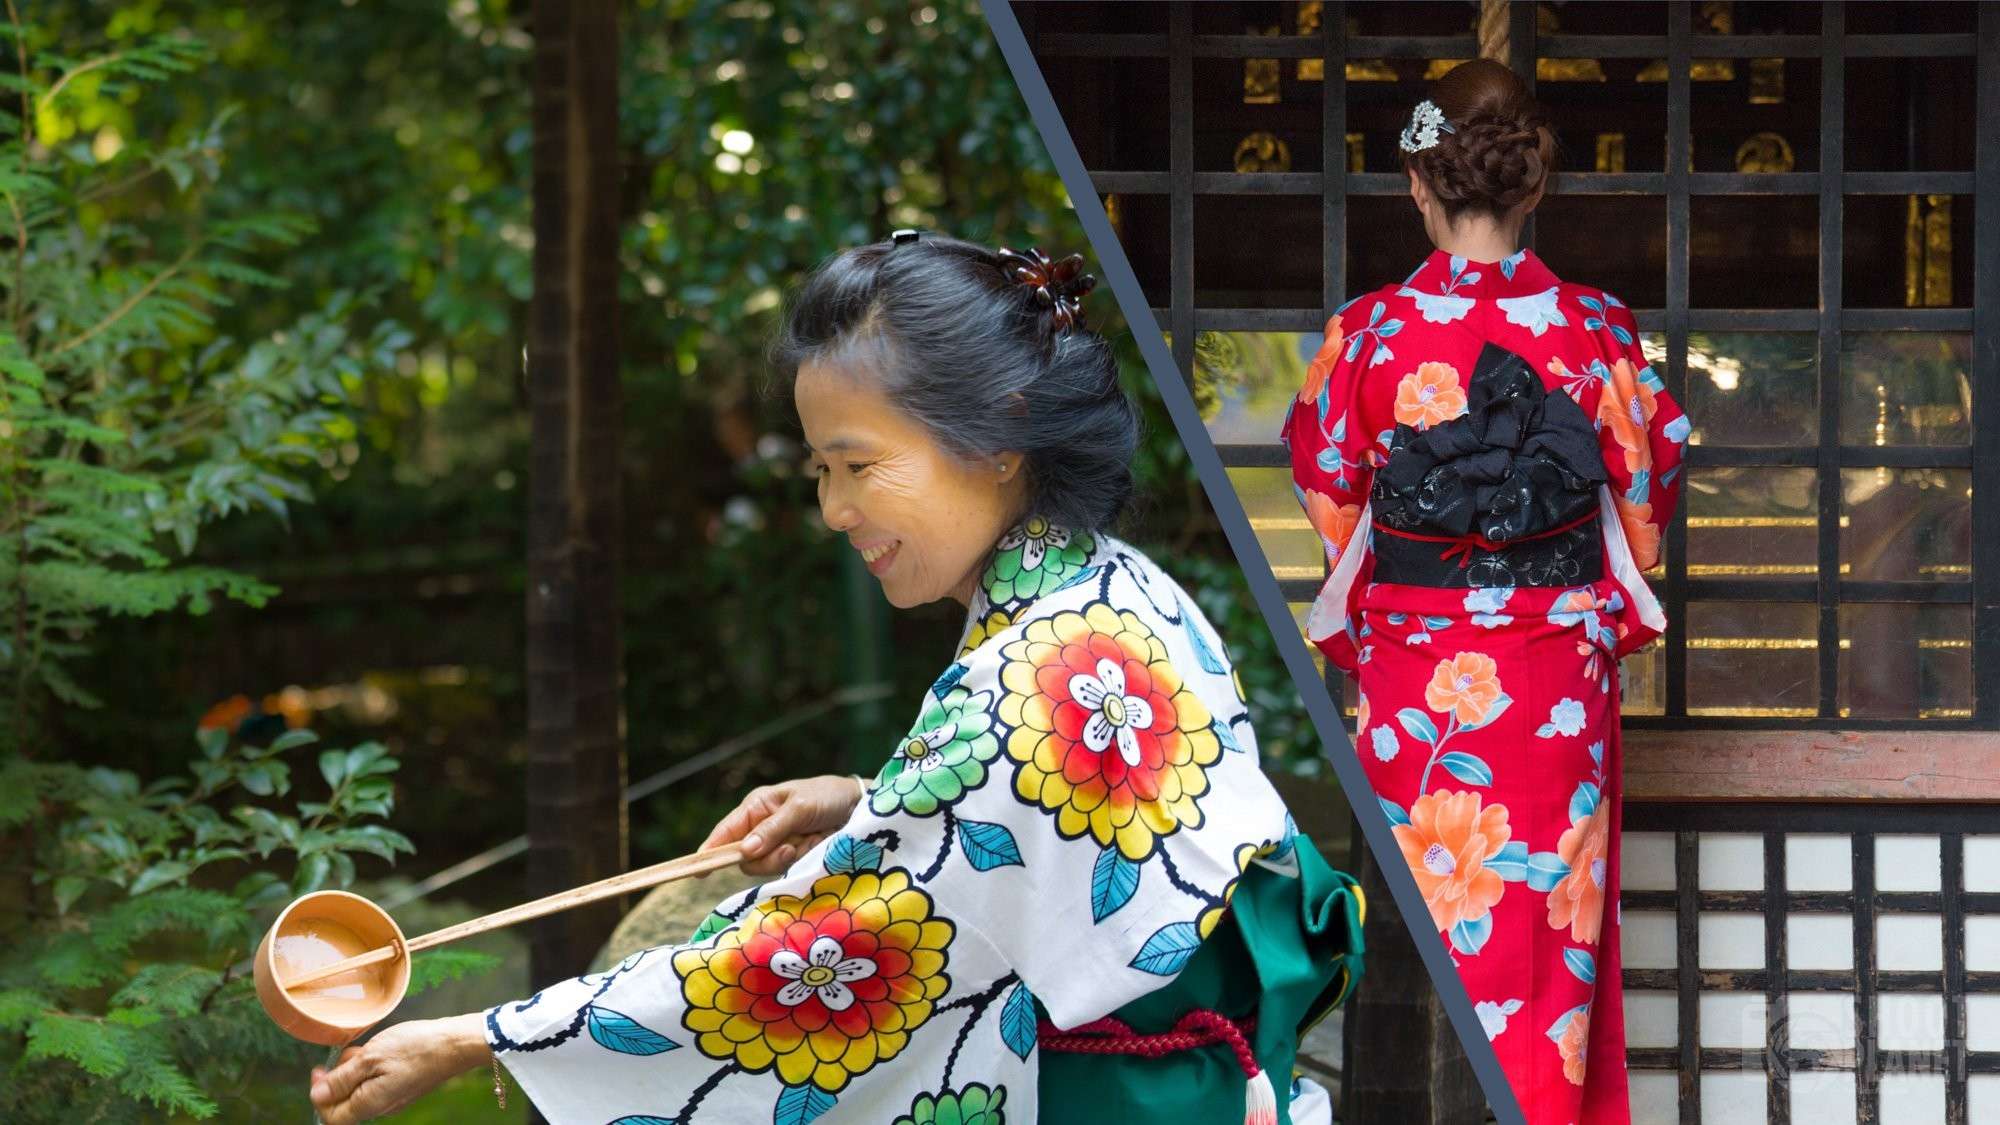 Japanese women in traditional dresses